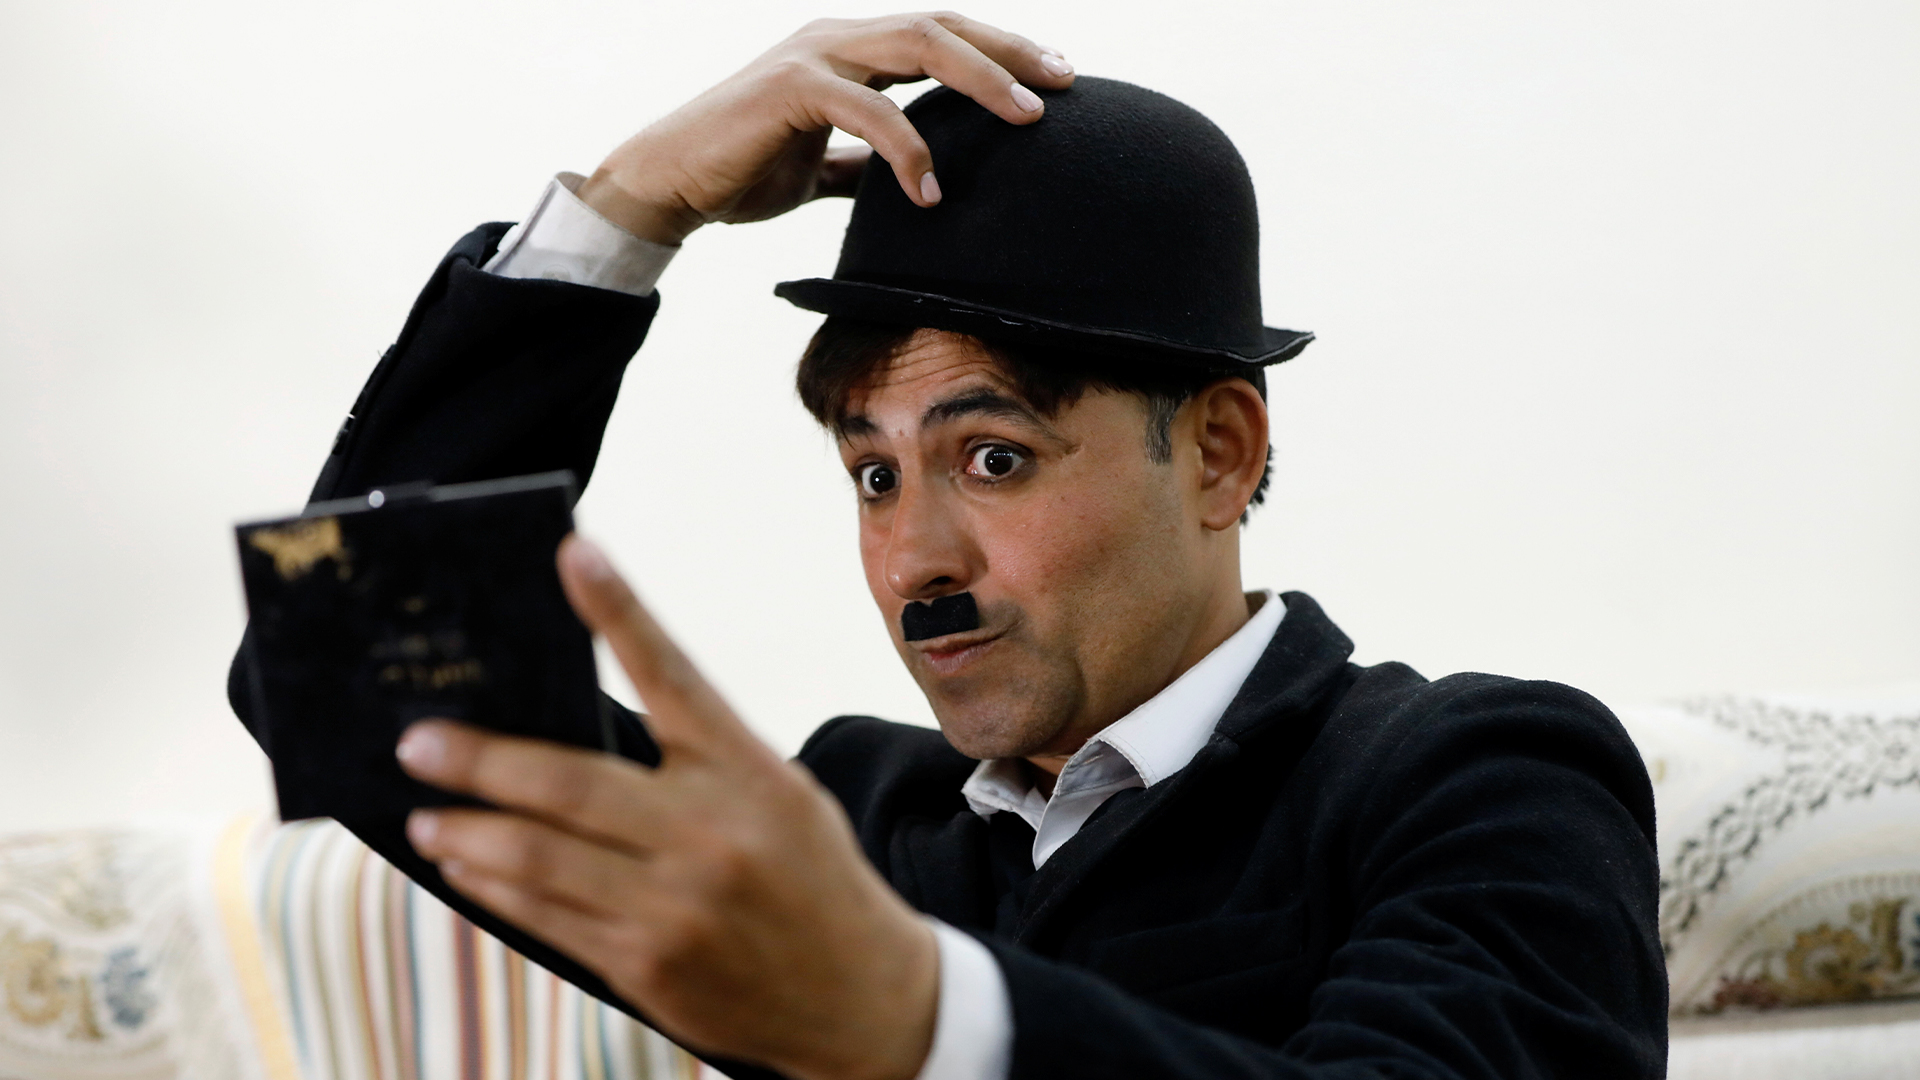 Charlie Chaplin: Famous Personality Of London In 2021